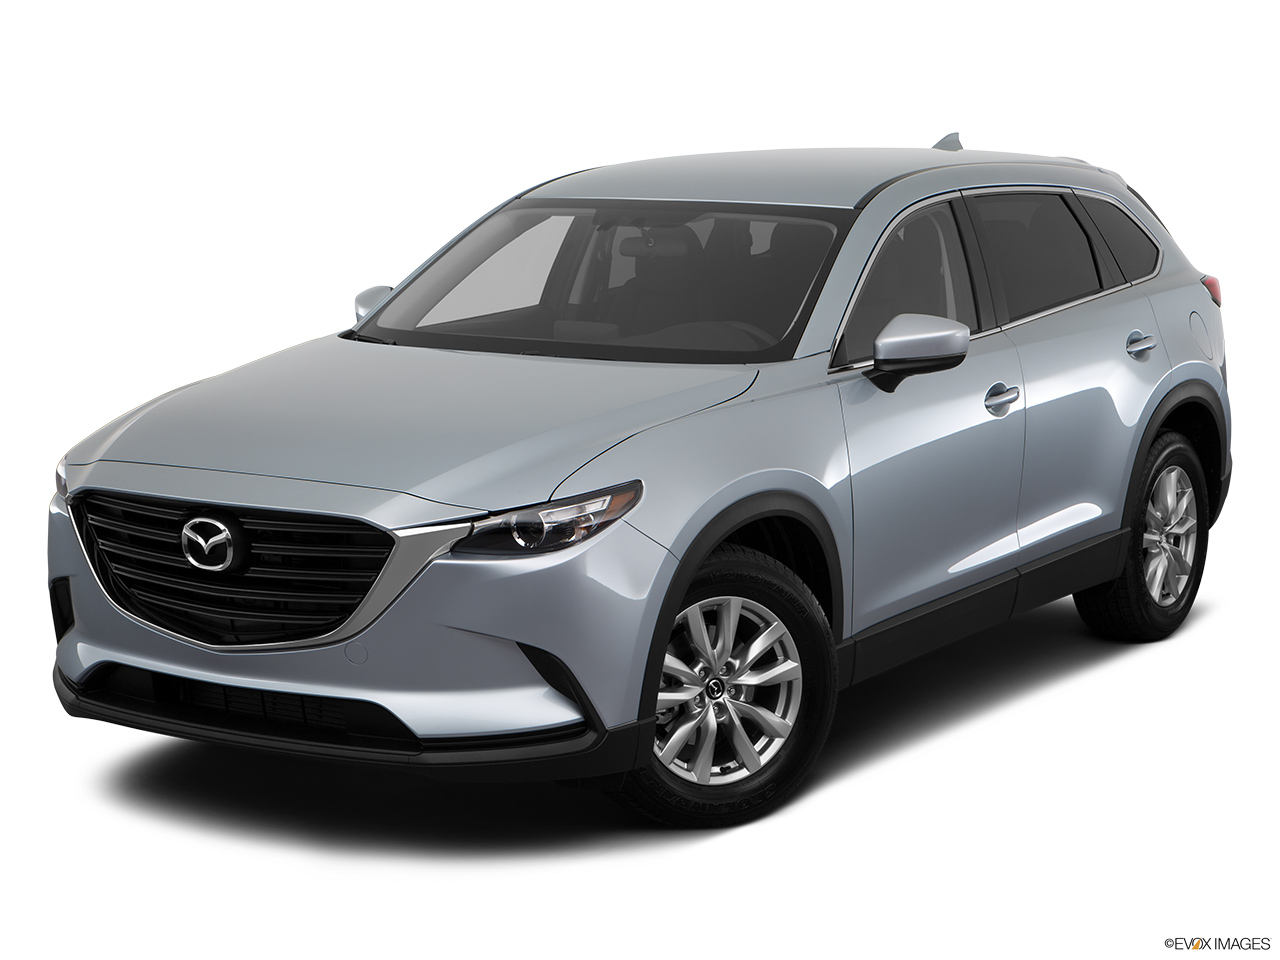 2016 mazda cx 9 prices in oman gulf specs amp reviews for